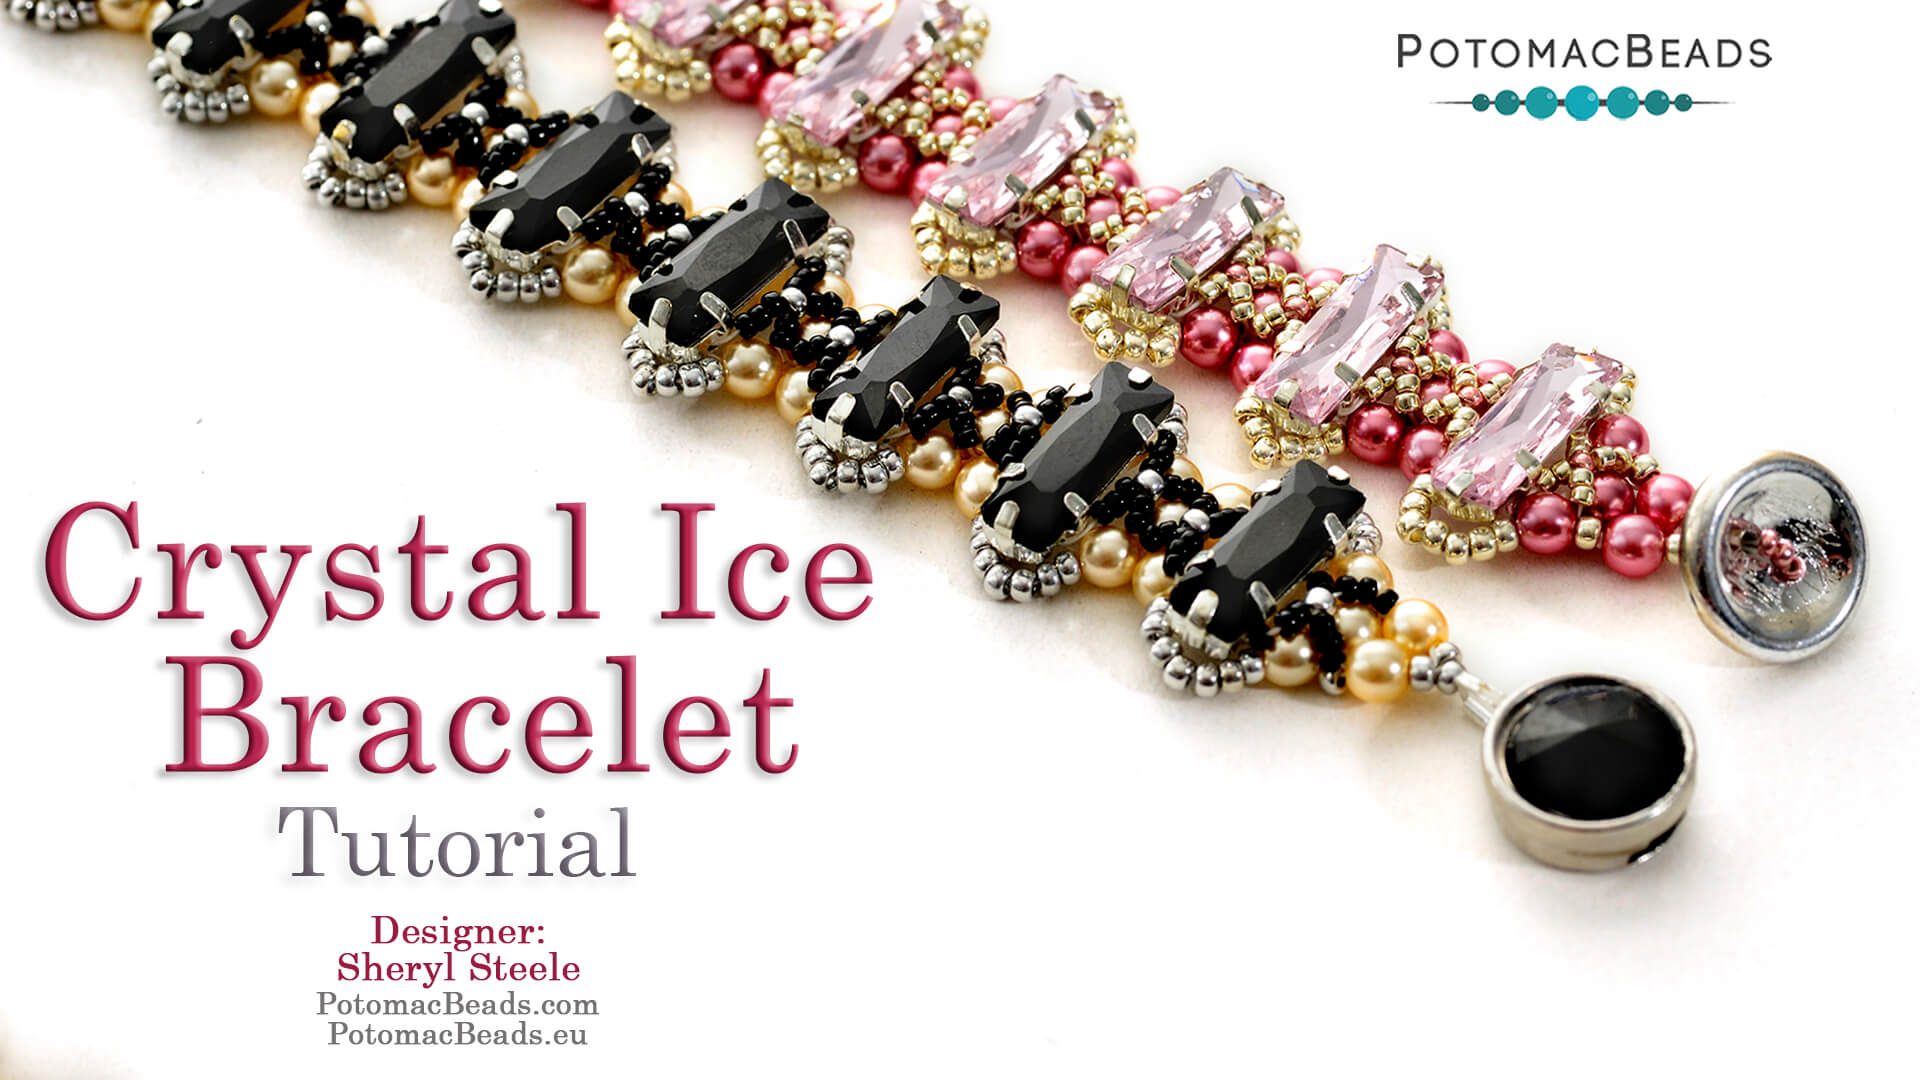 How to Bead Jewelry / Videos Sorted by Beads / Pearl Videos (Czech, Freshwater, Potomac Pearls) / Crystal Ice Bracelet Tutorial